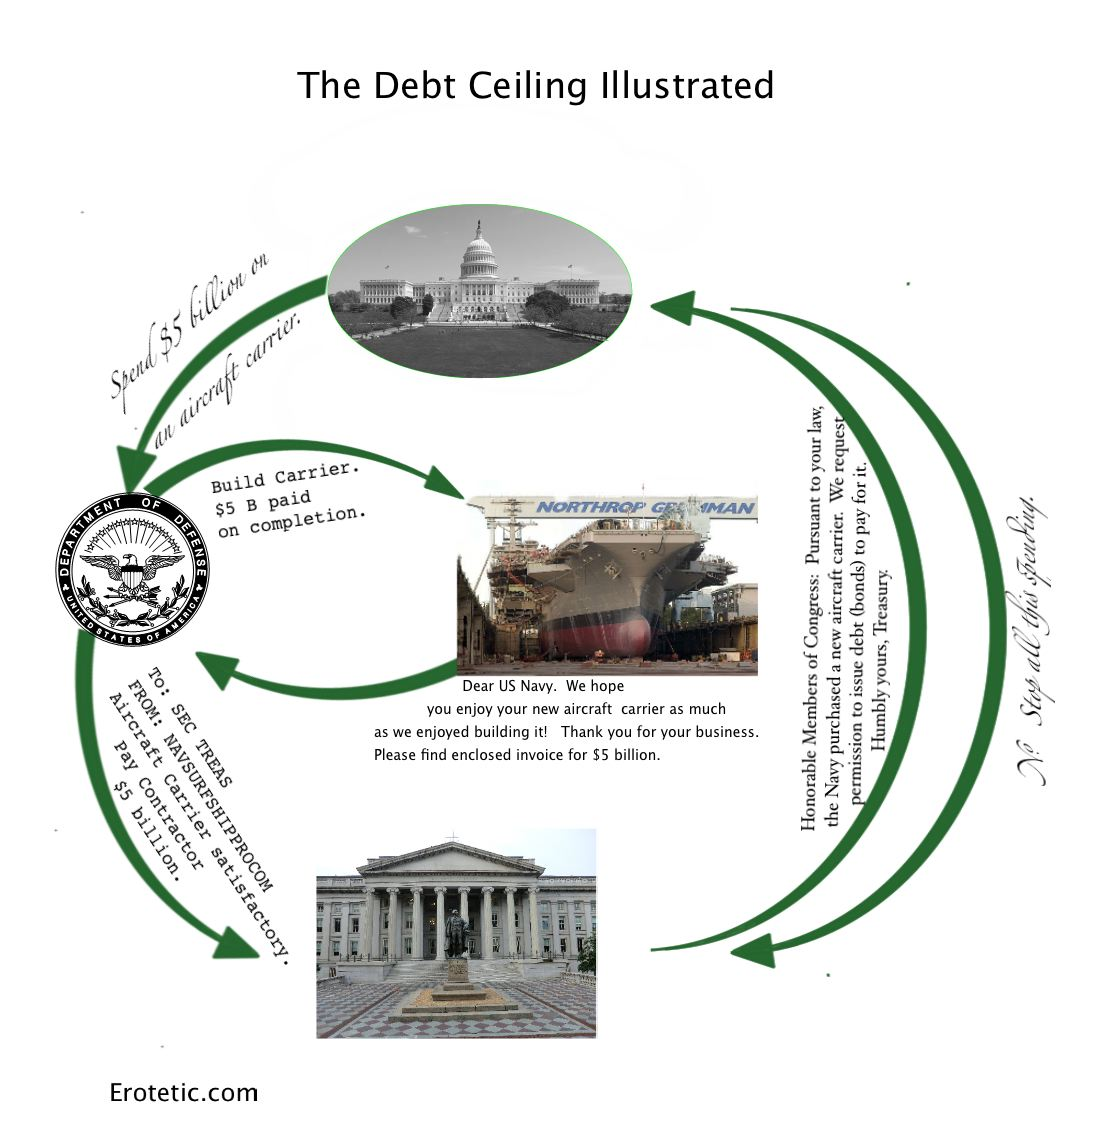 Debt ceiling illustrated